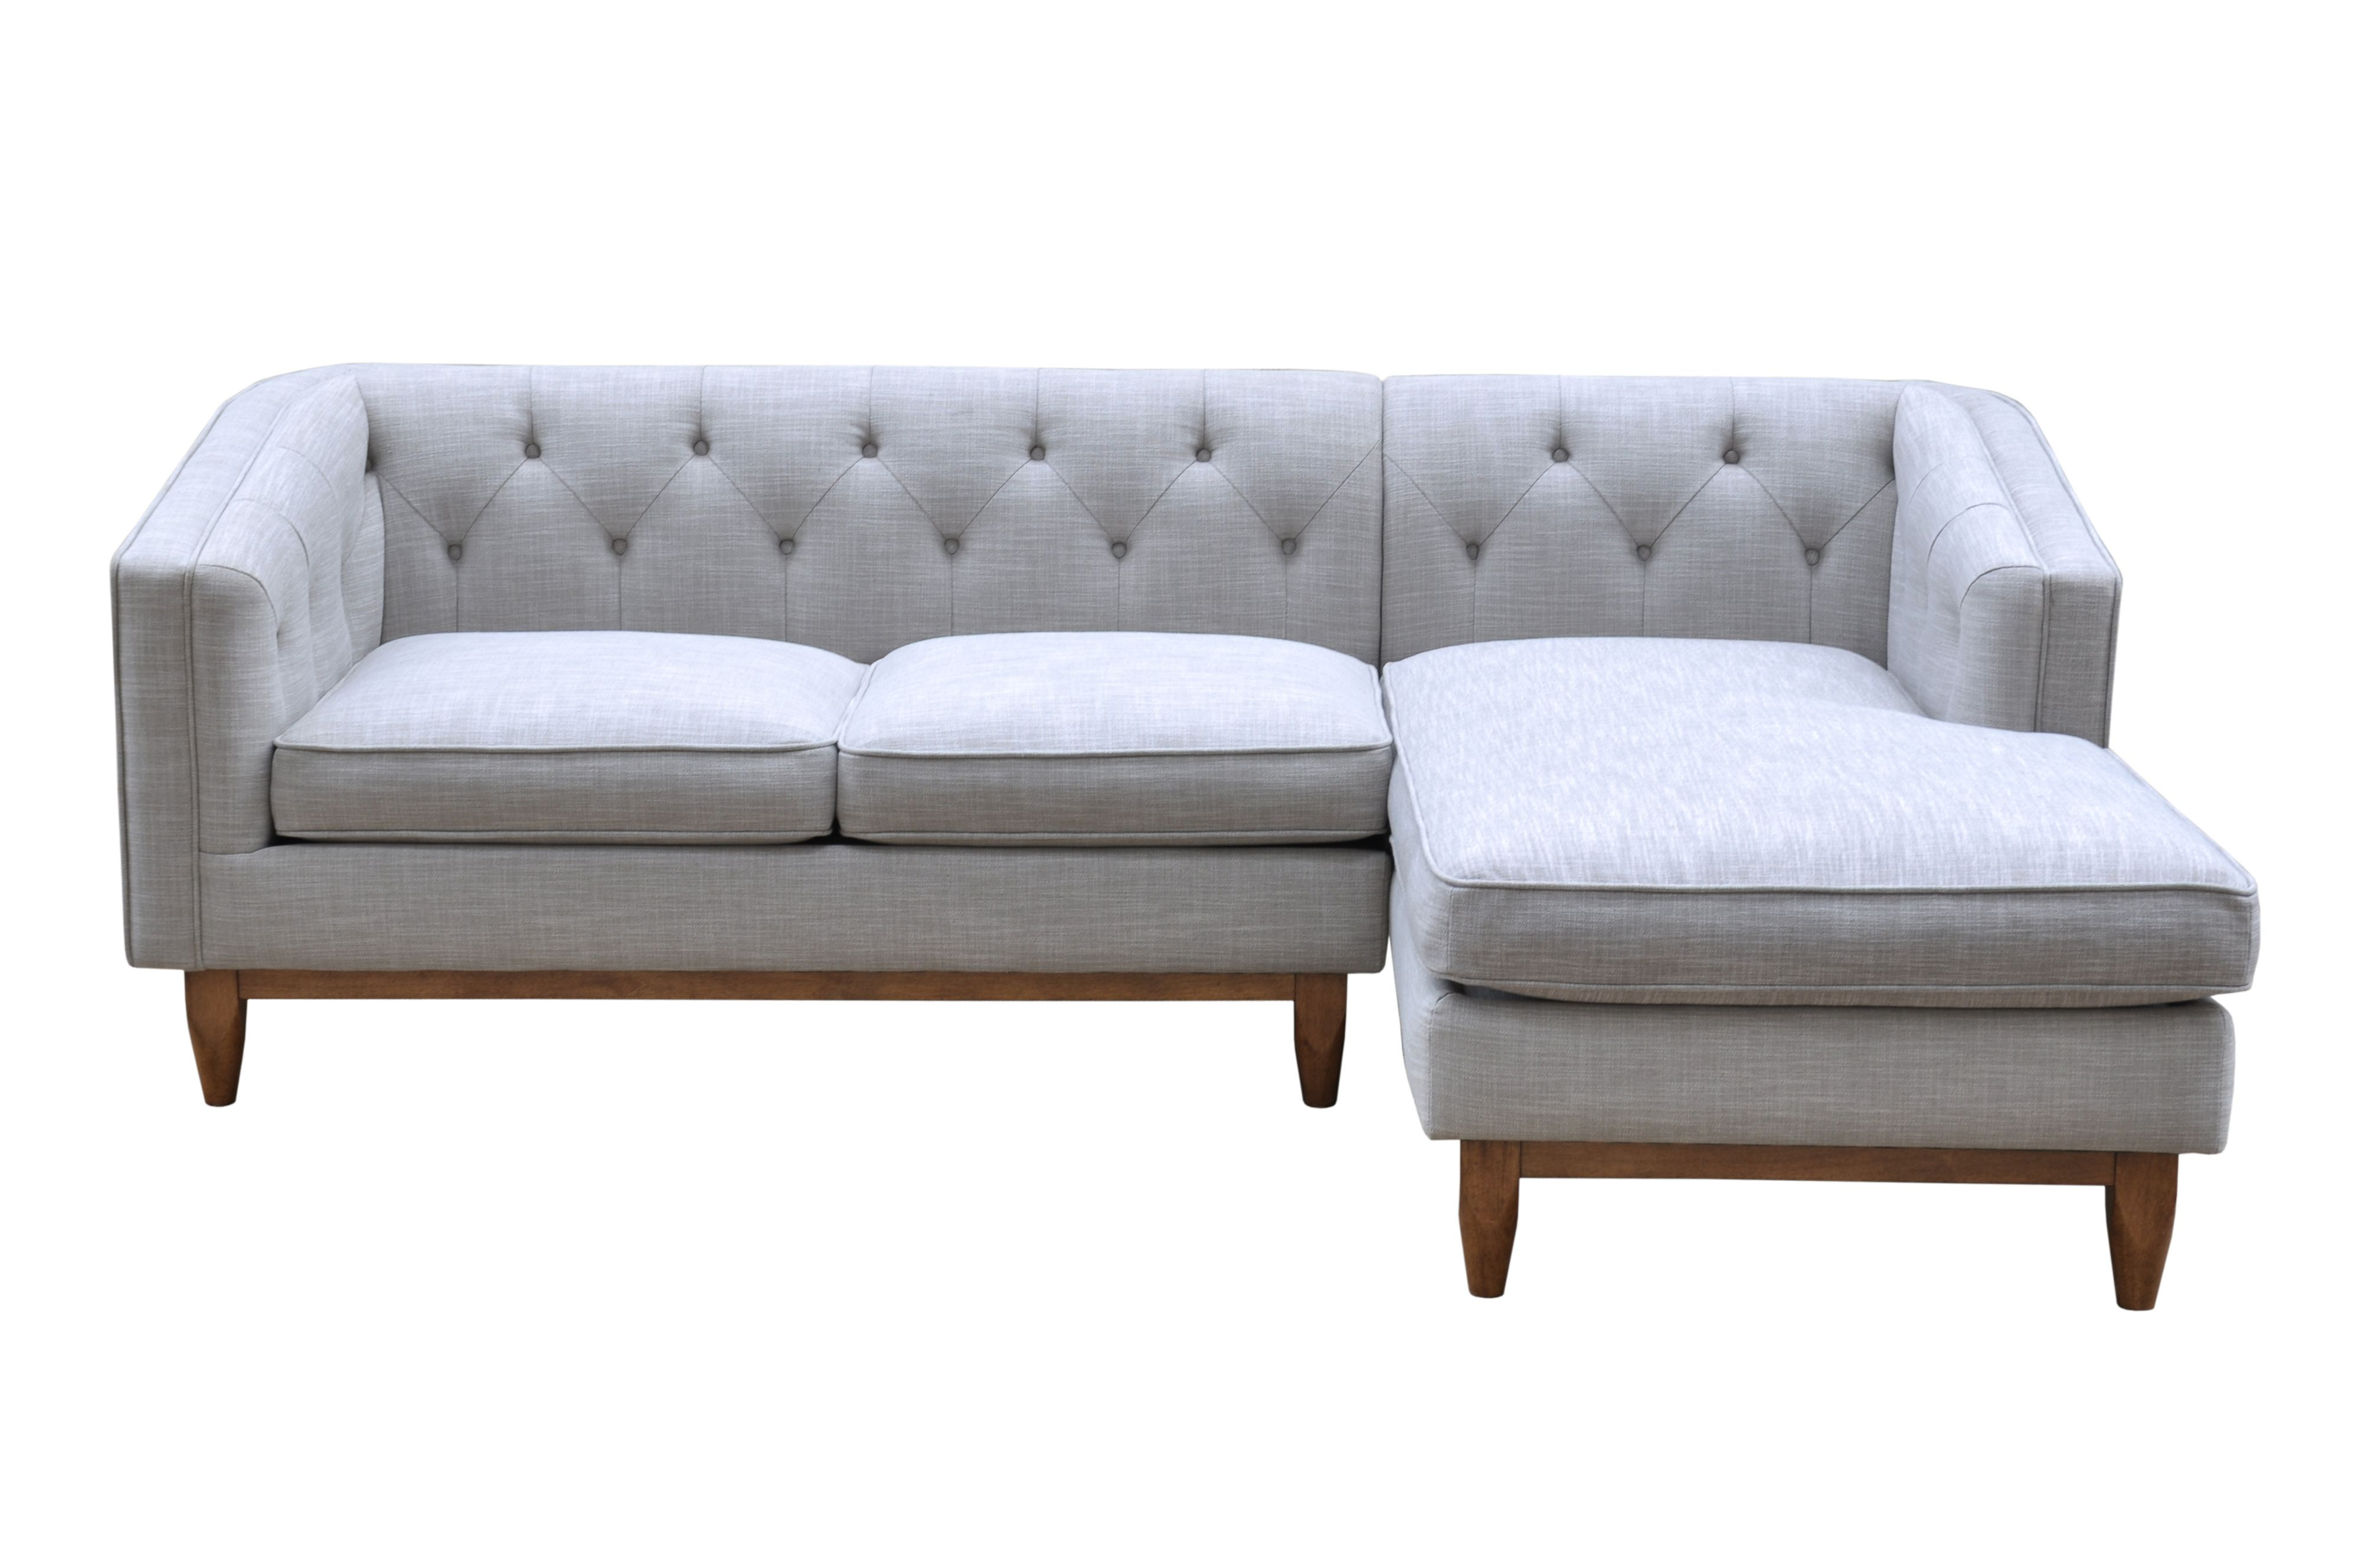 Buy cheap chaise sofa compare sofas prices for best uk deals for Affordable chaise sofas